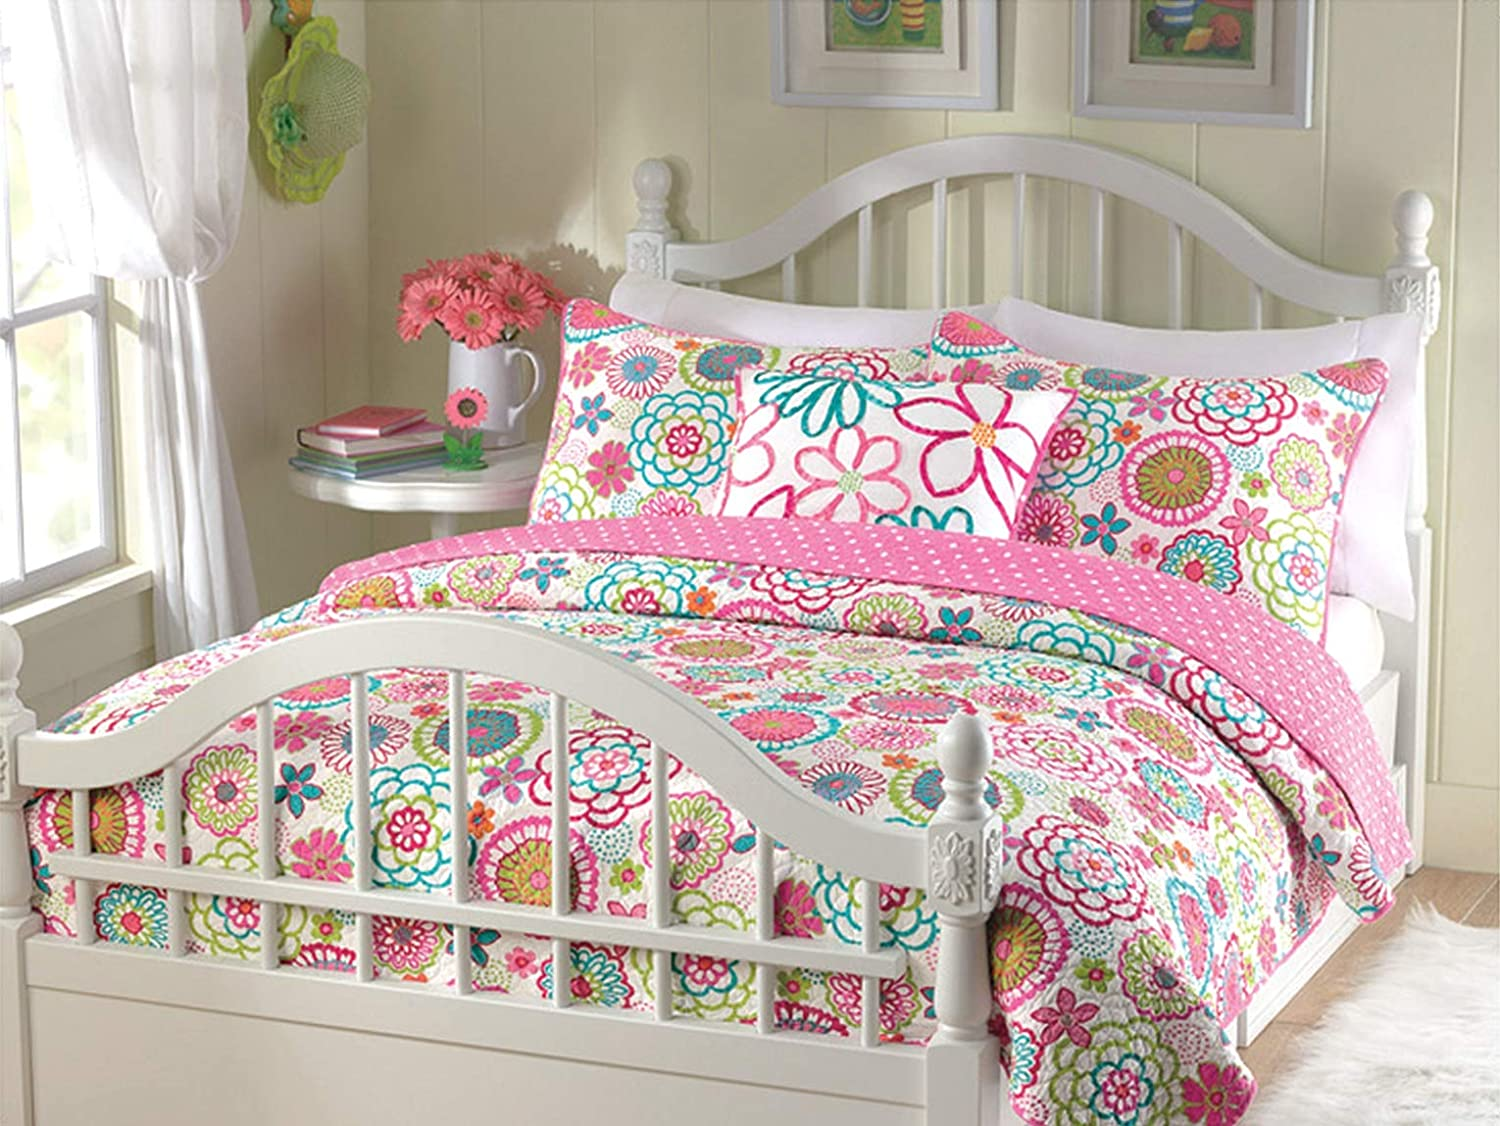 Cozy Line Home Fashions 3-Piece Quilt Set, Mariah Pink Polka Dot Flower Lightweight Reversible Coverlet Bedspread, Bedding for Little Girls, Kids(Colorful Floral, Full/Queen - 3pc: 1 Quilt + 2 Shams) BB-K-10595